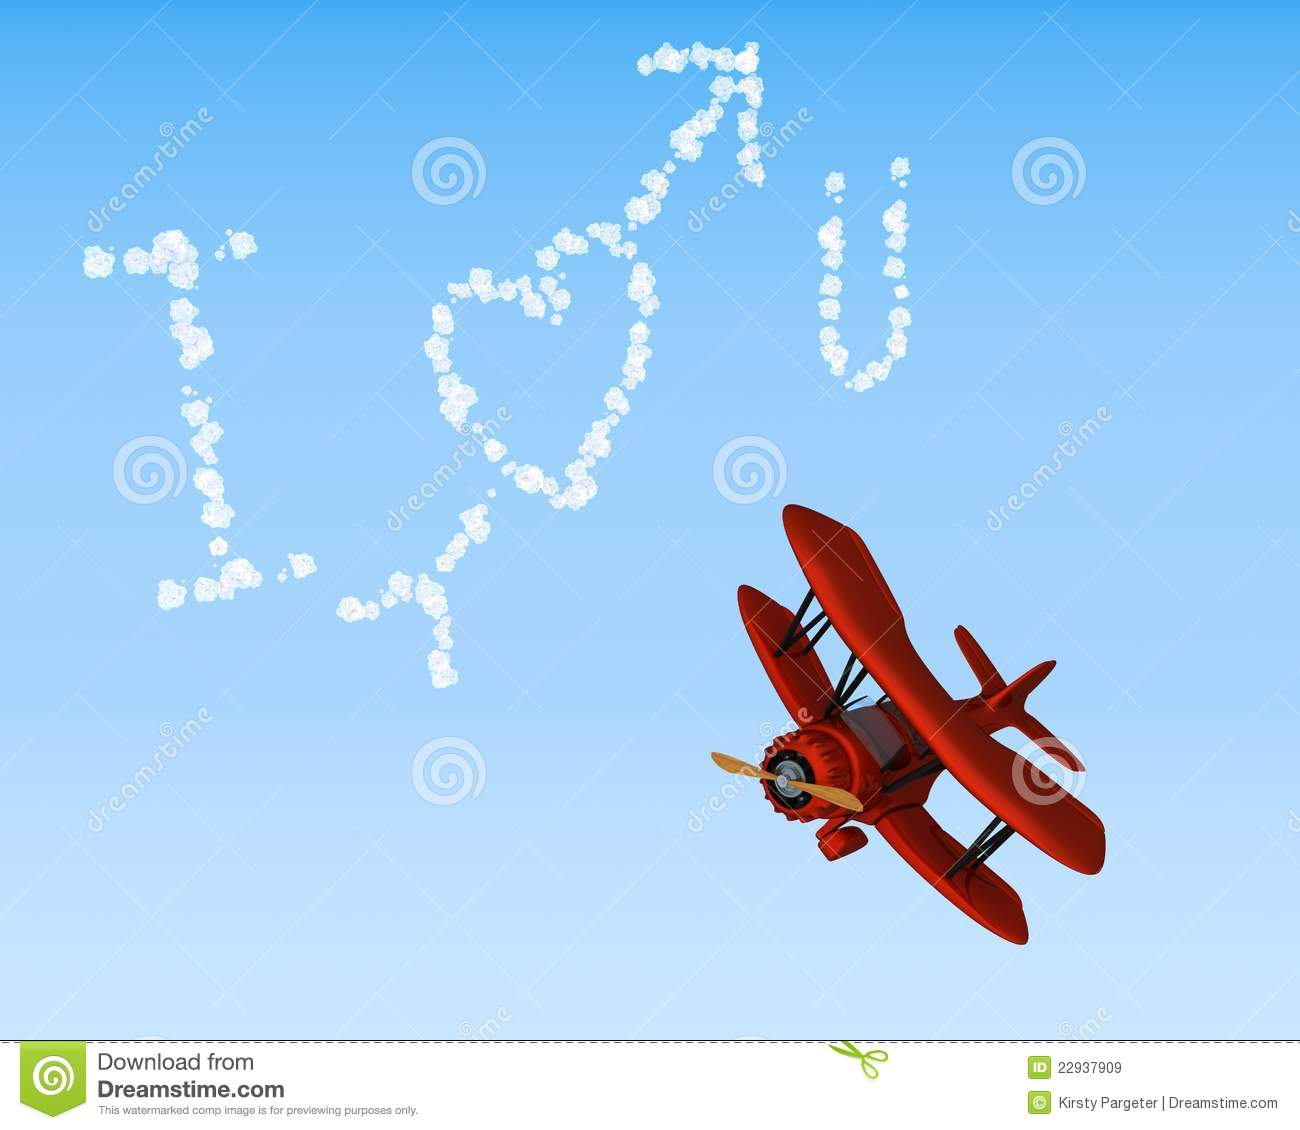 Royalty Free Stock Images Biplane Sky Writing I Love You Image22937909 on Latest Old English Writing